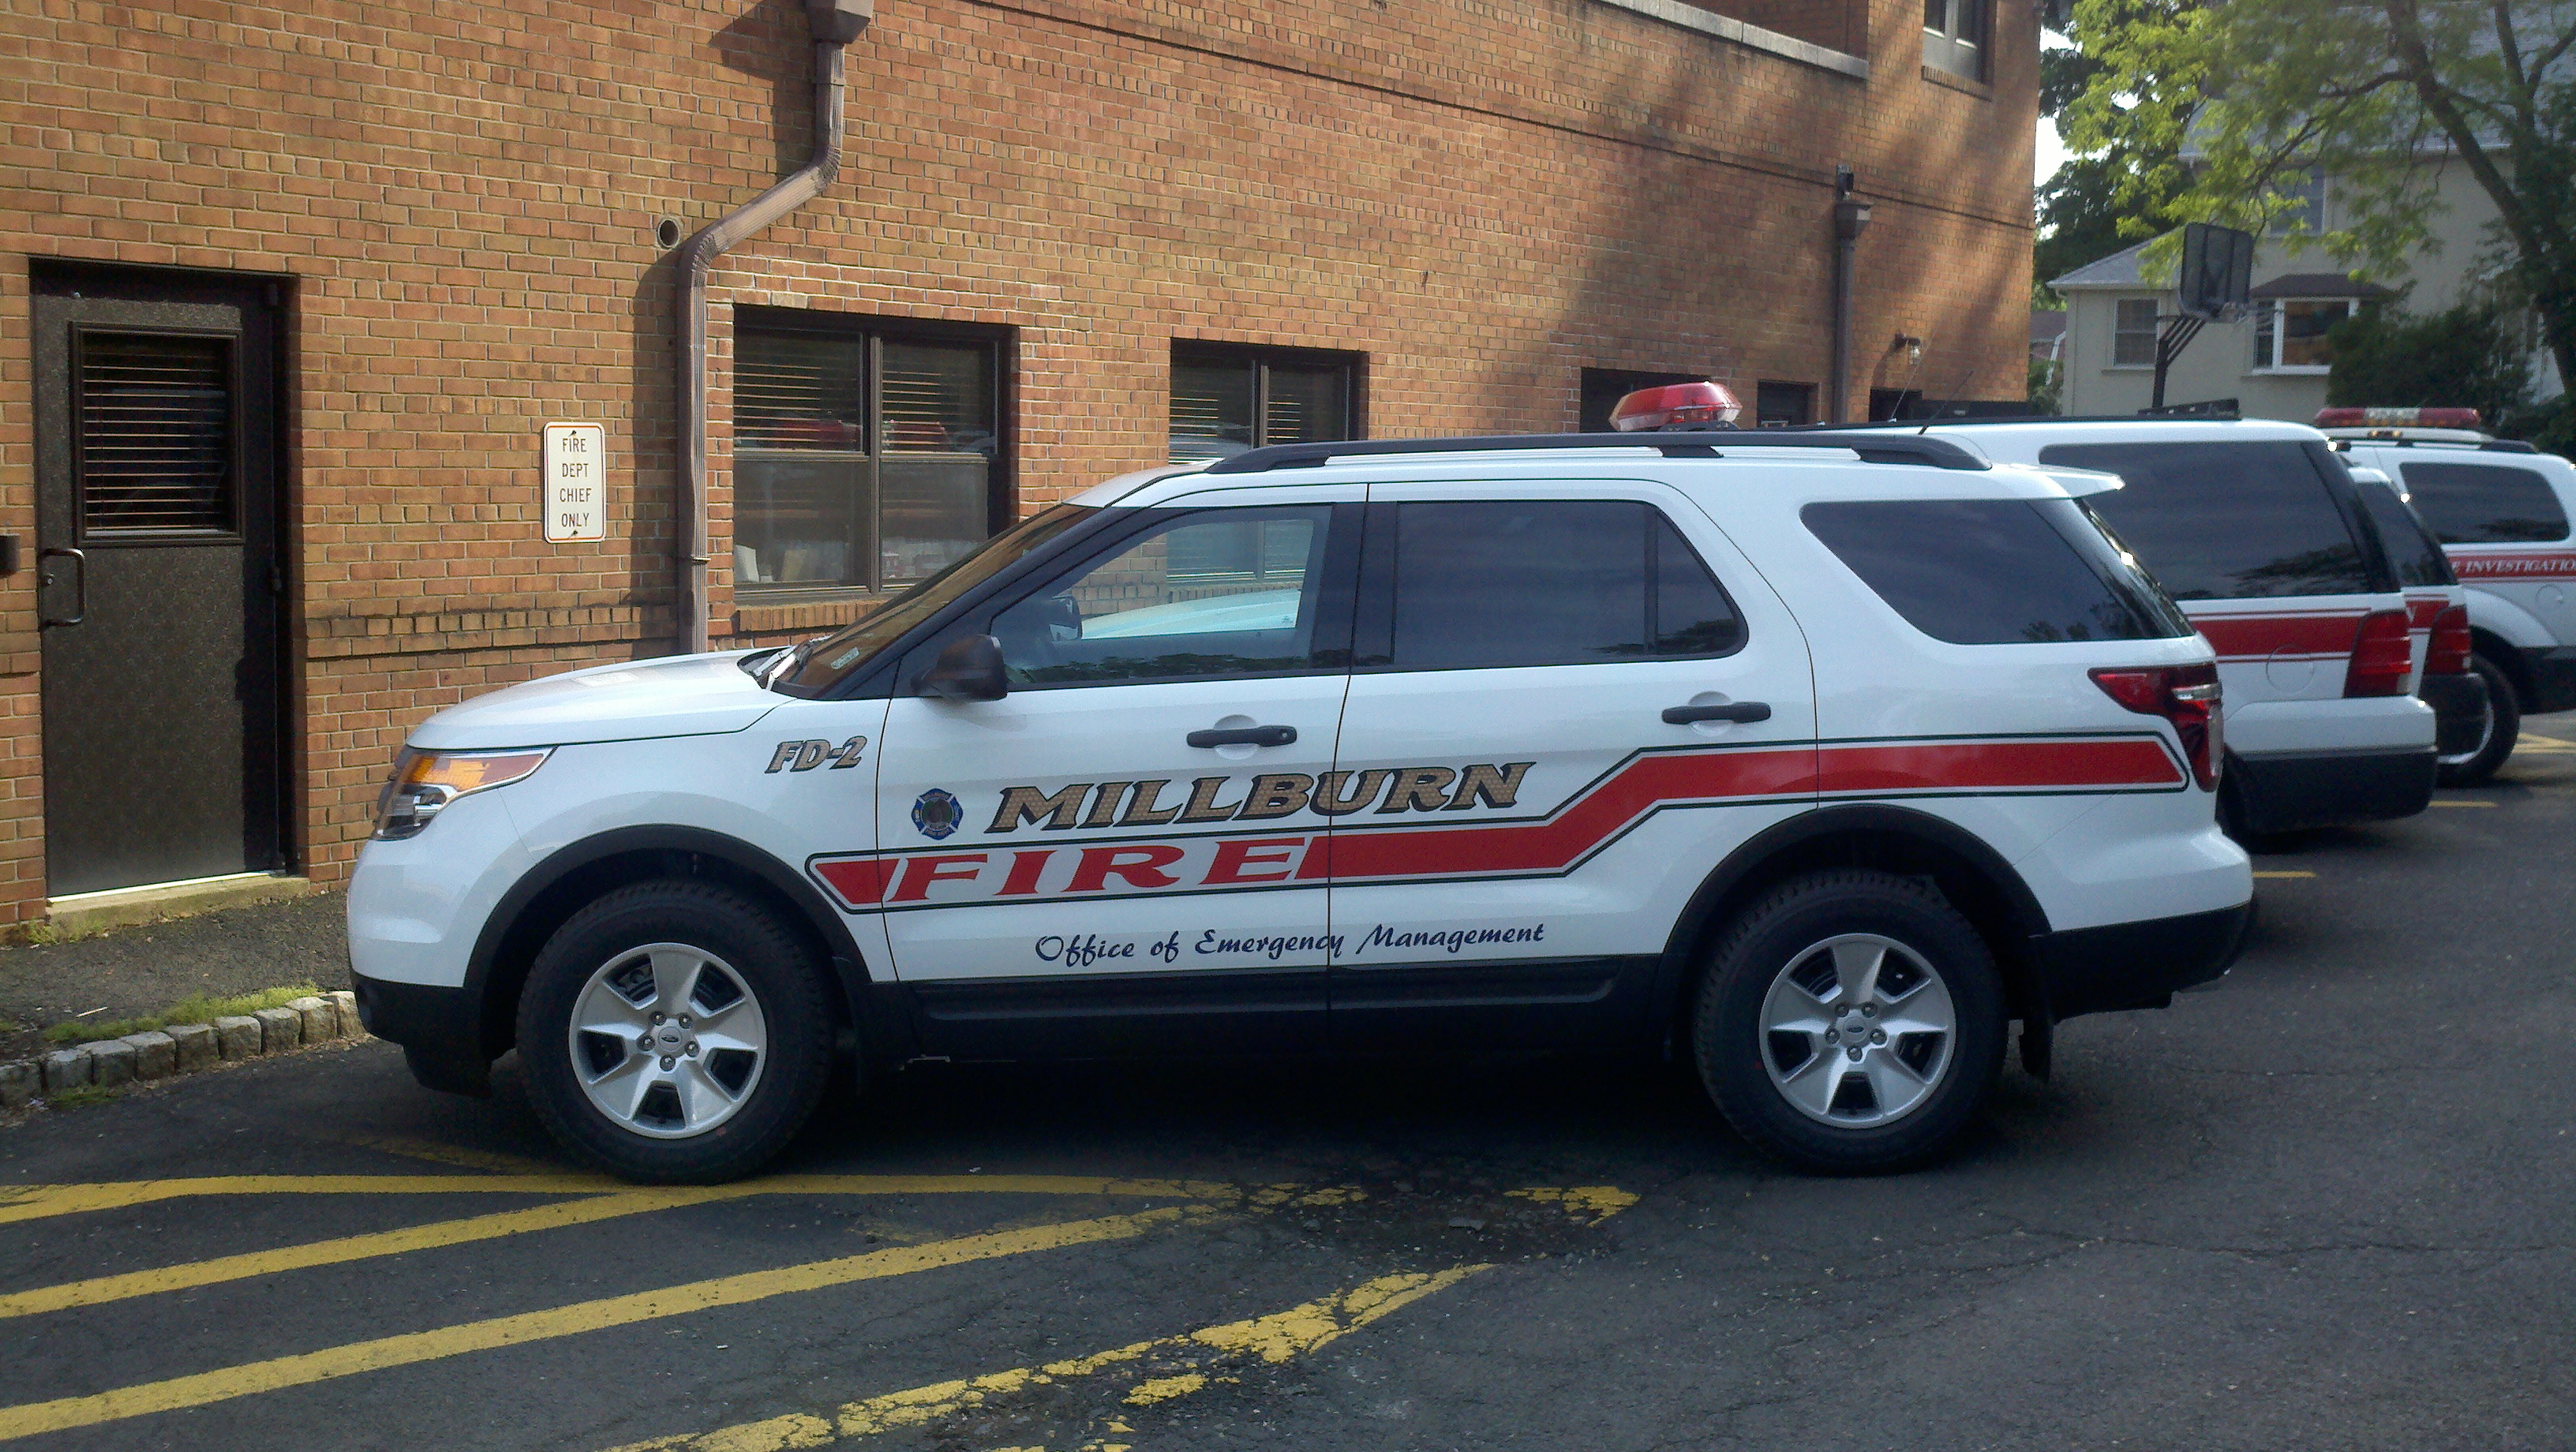 A fleet of white cars with Millburn Fire on the side